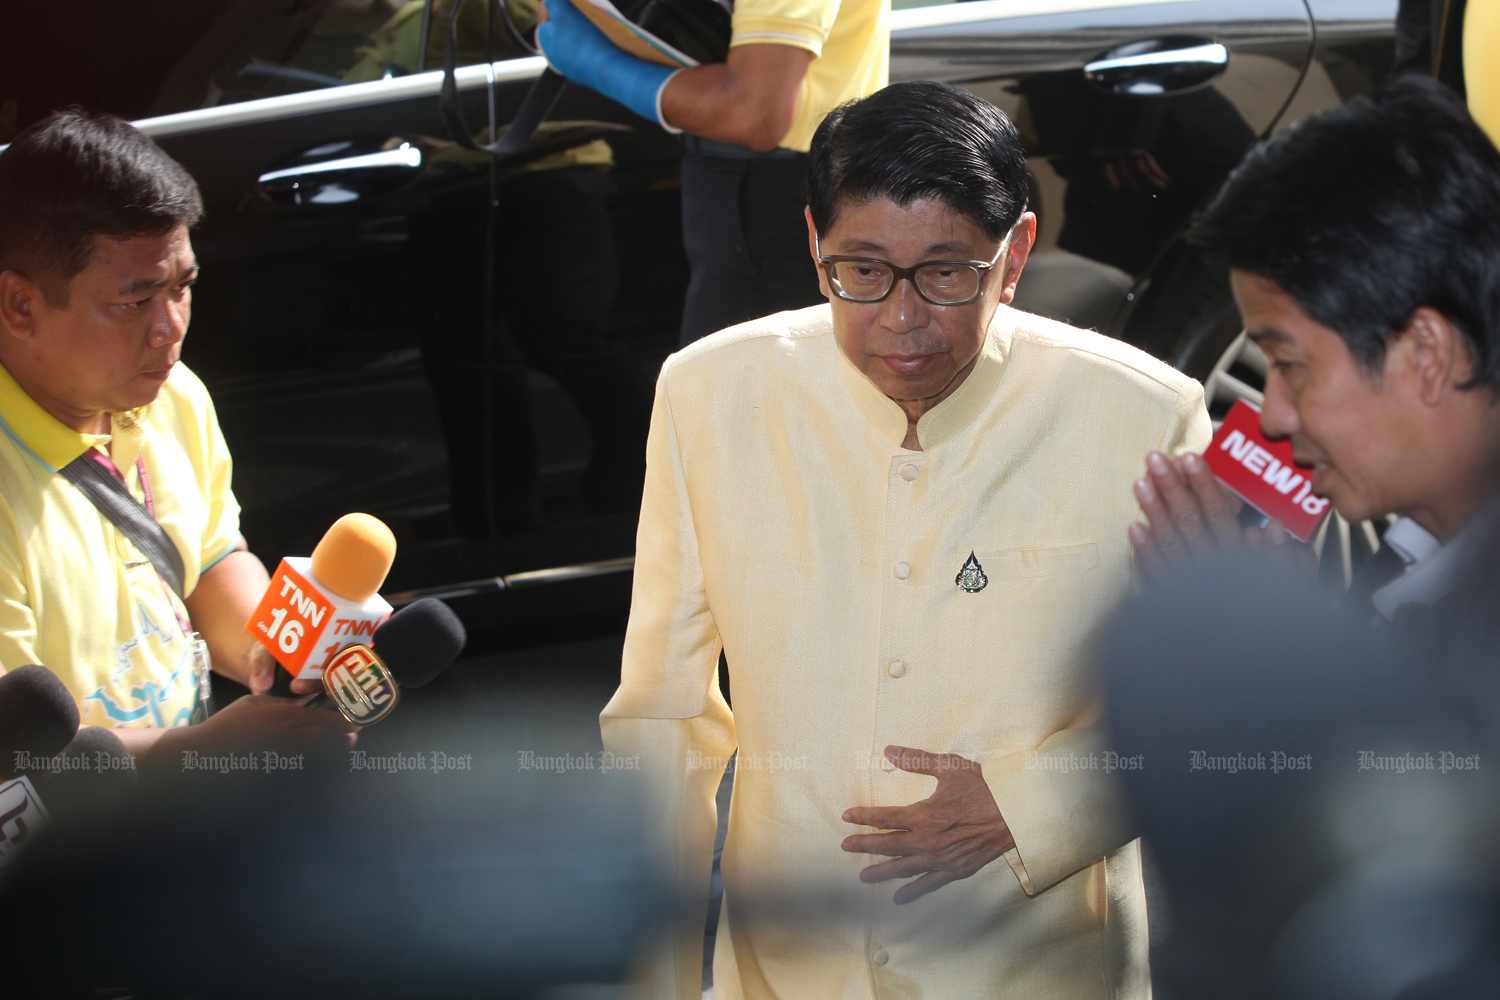 The Communicable Diseases Control Act is likely to be used to battle a second wave of Covid-19 infections, according to Deputy Prime Minister Wissanu Krea-ngam.